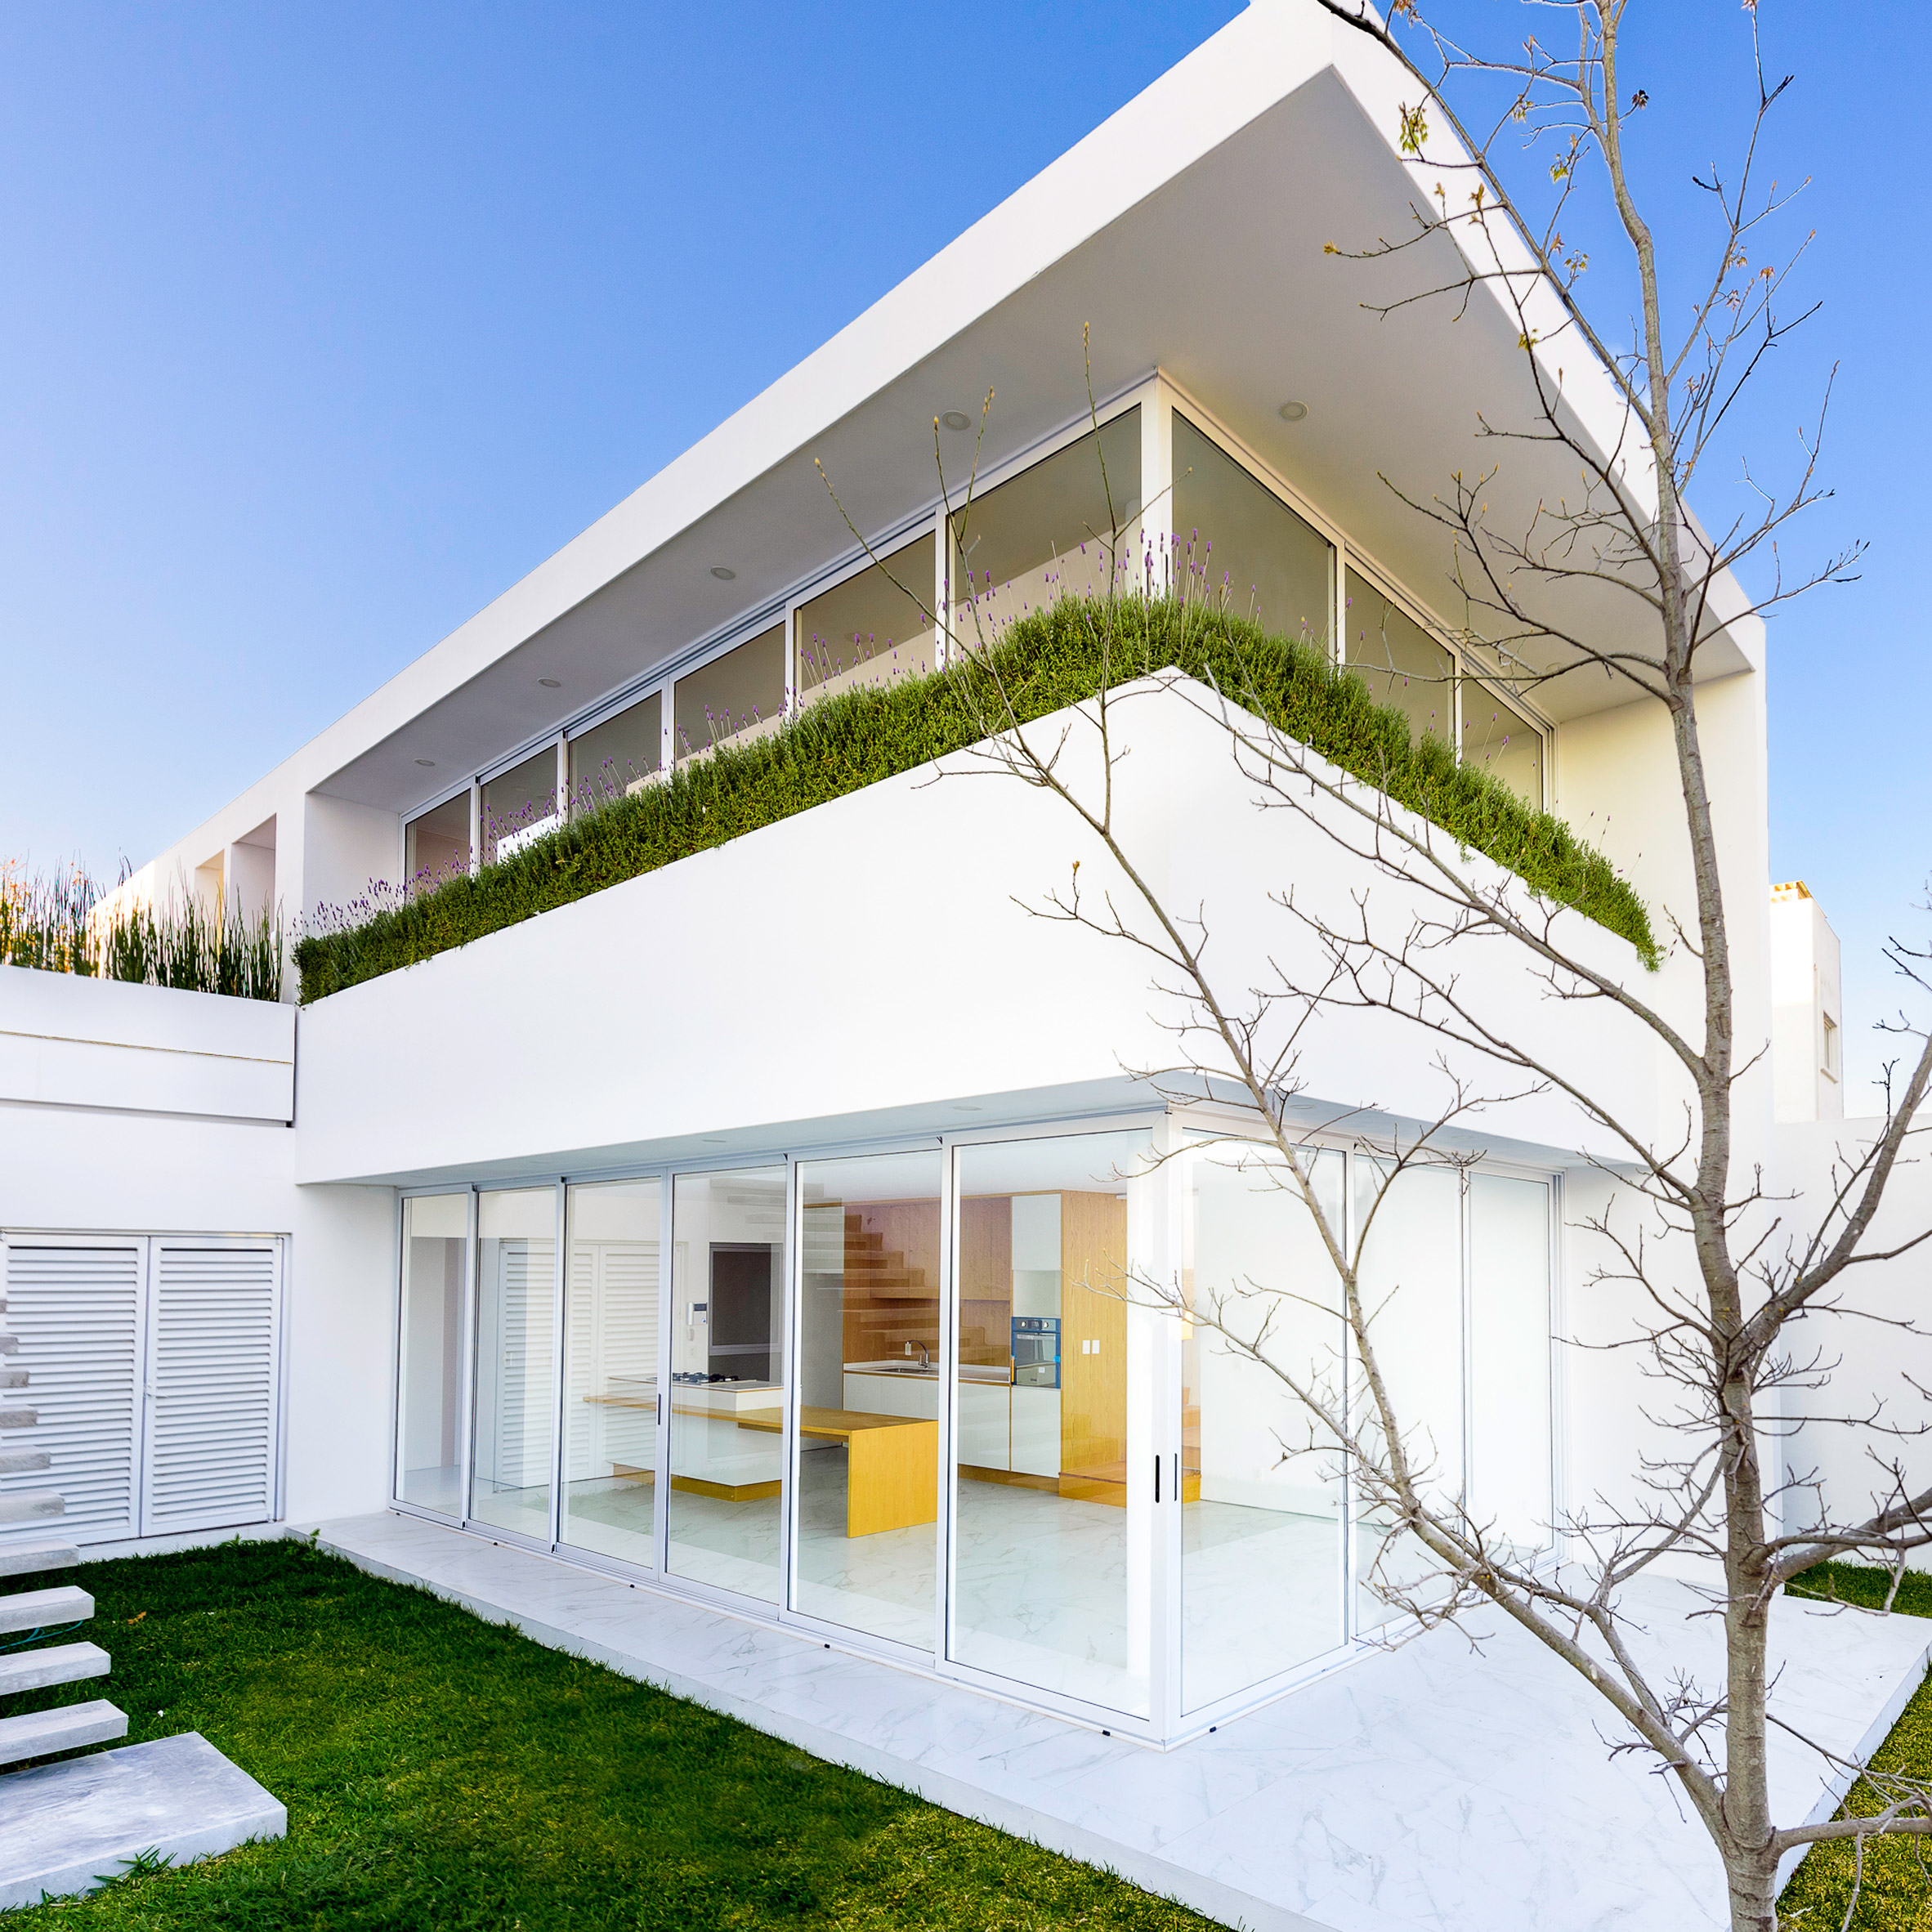 Central de arquitectura a mexico city based design studio has - Glazing Surrounds White House By Evelop Arquitectura To Provide Vistas Of Mexican Dale